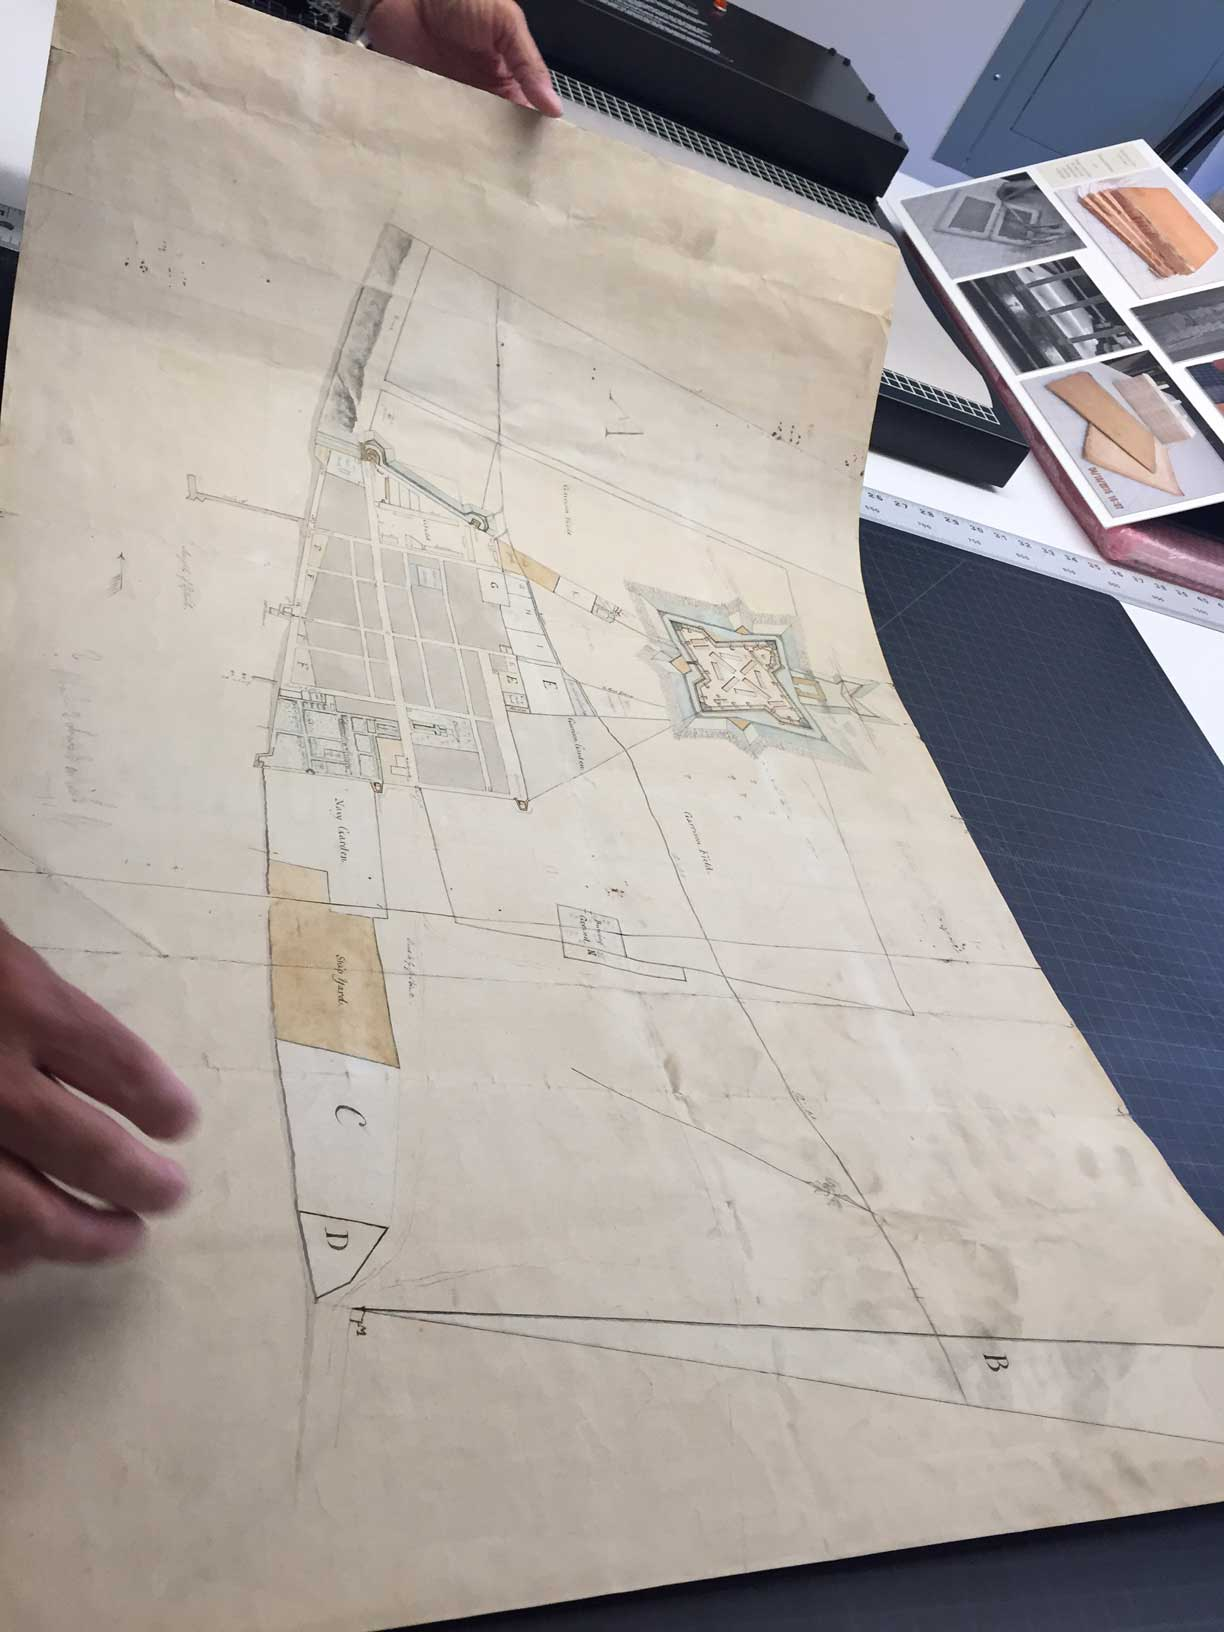 """Rough sketch of the King's Domain at Detroit,"" a 1790 manuscript plan of the city of Detroit, was discovered in a family home in Almonte, Canada. Here archivists inspect the work for the first time outside of its original frame. Image courtesy: William L. Clements Library"